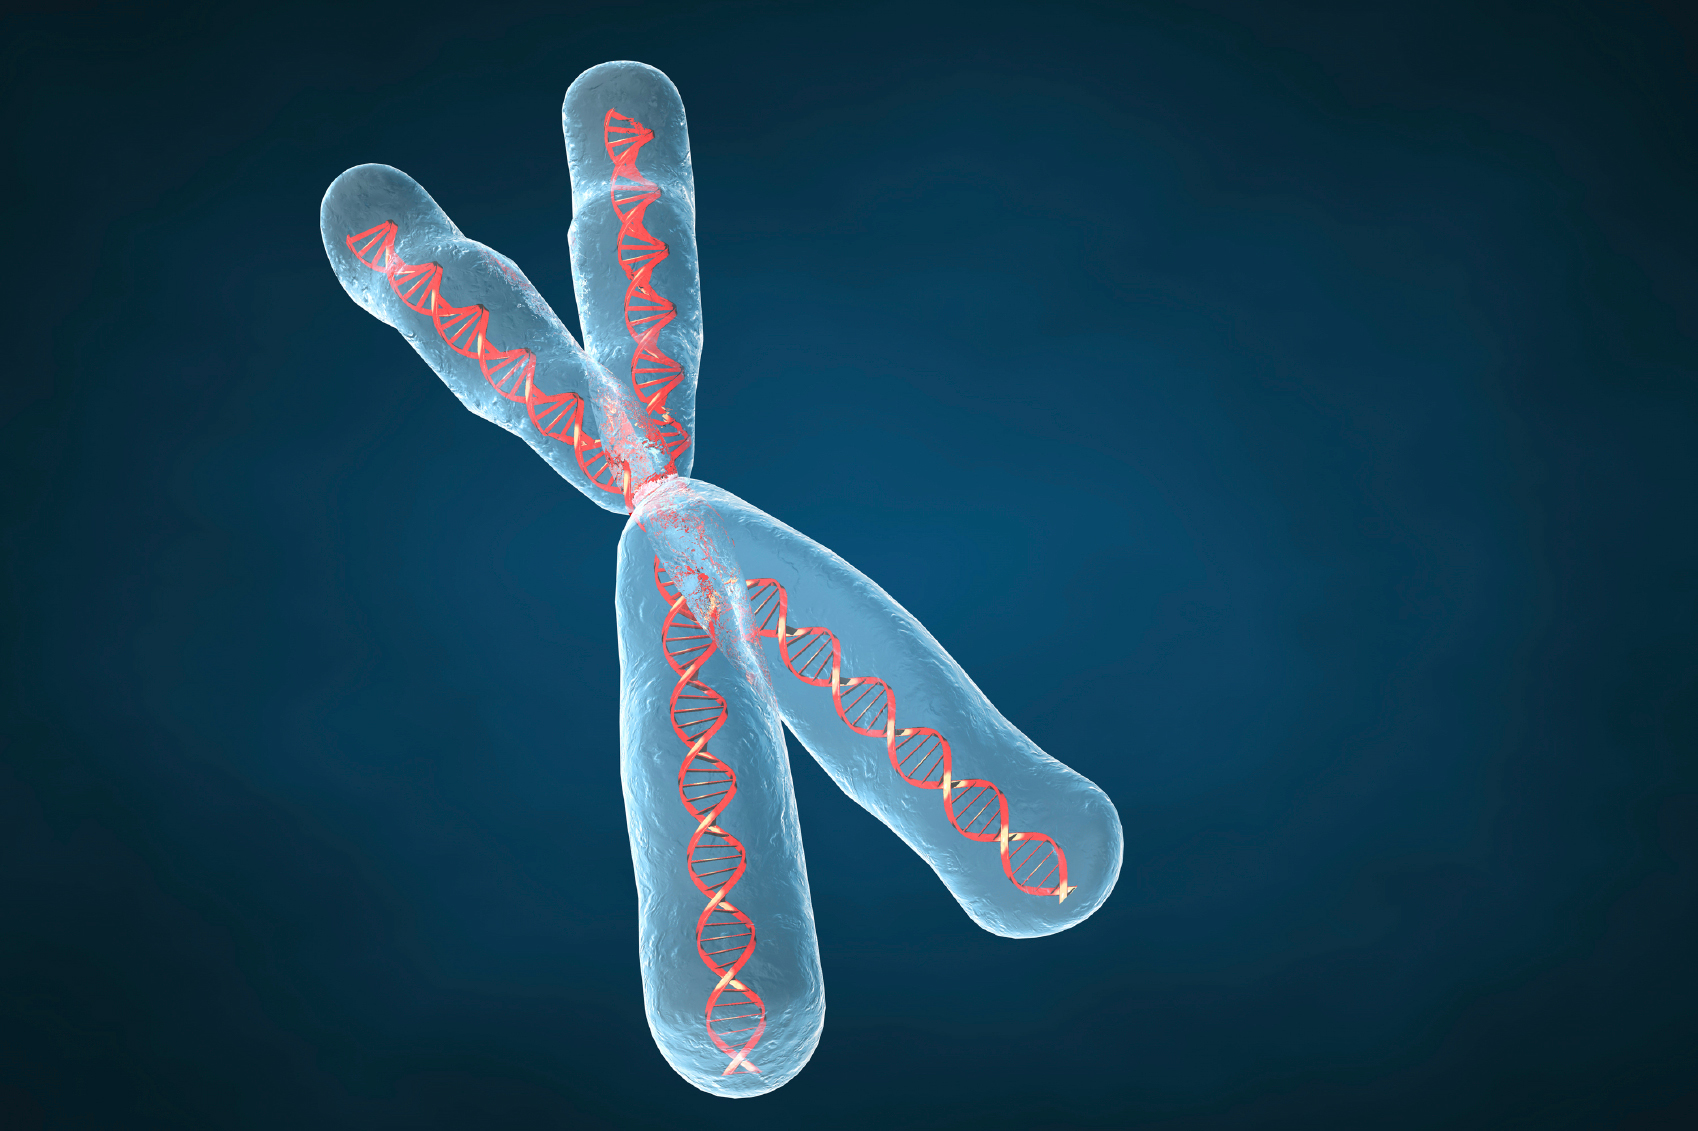 Human chromosome much older than previously thought